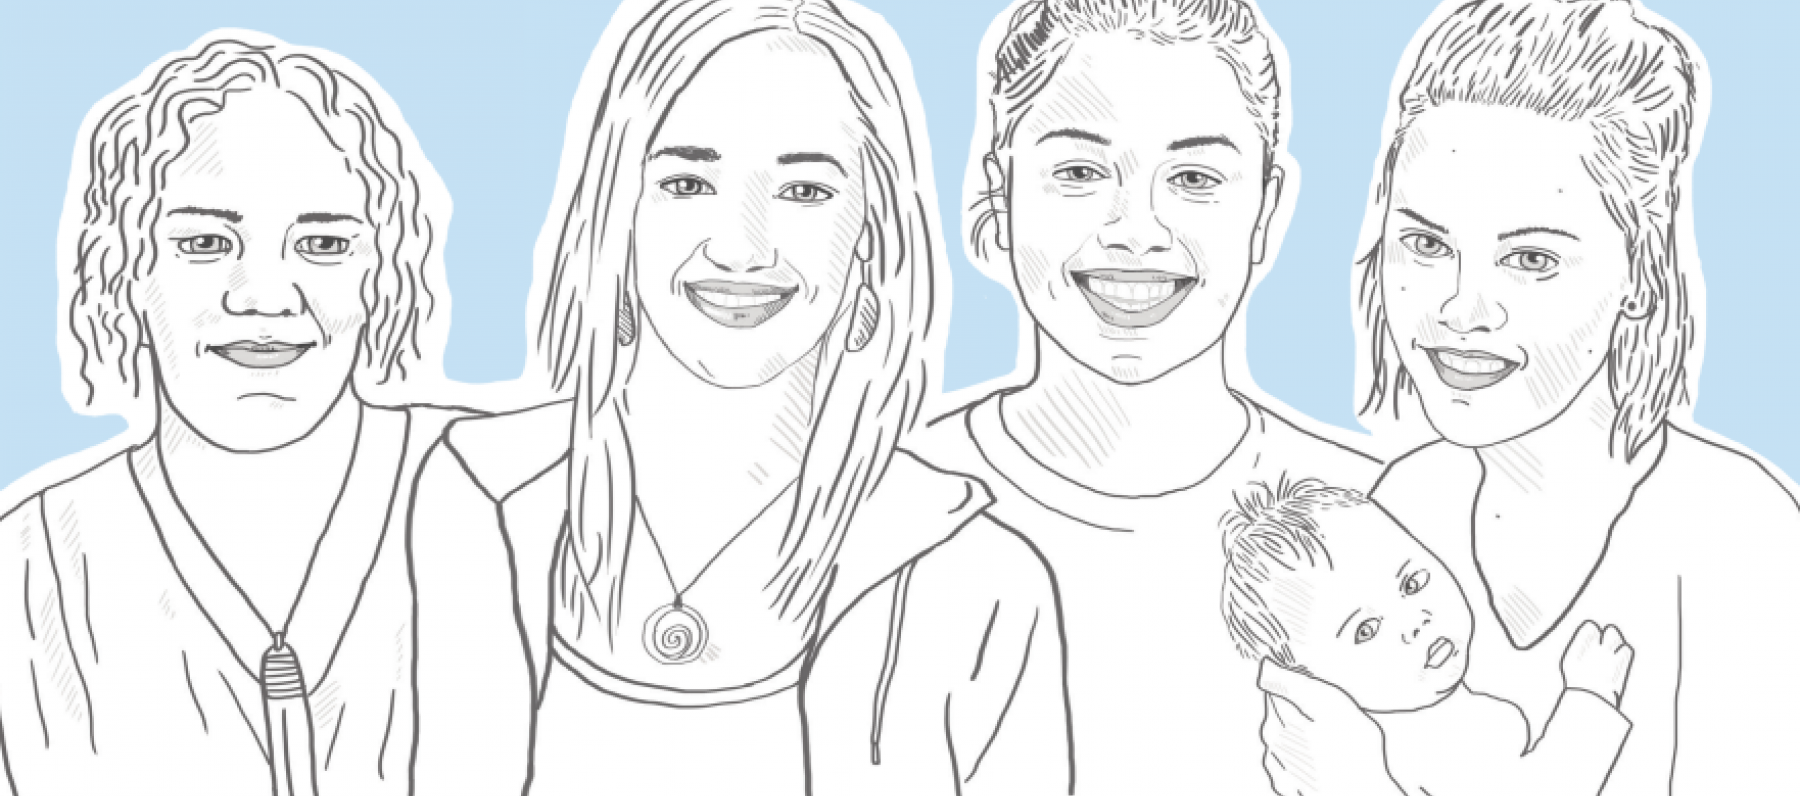 ThinkPlace New Zealand's quit-smoking project for young Māori women